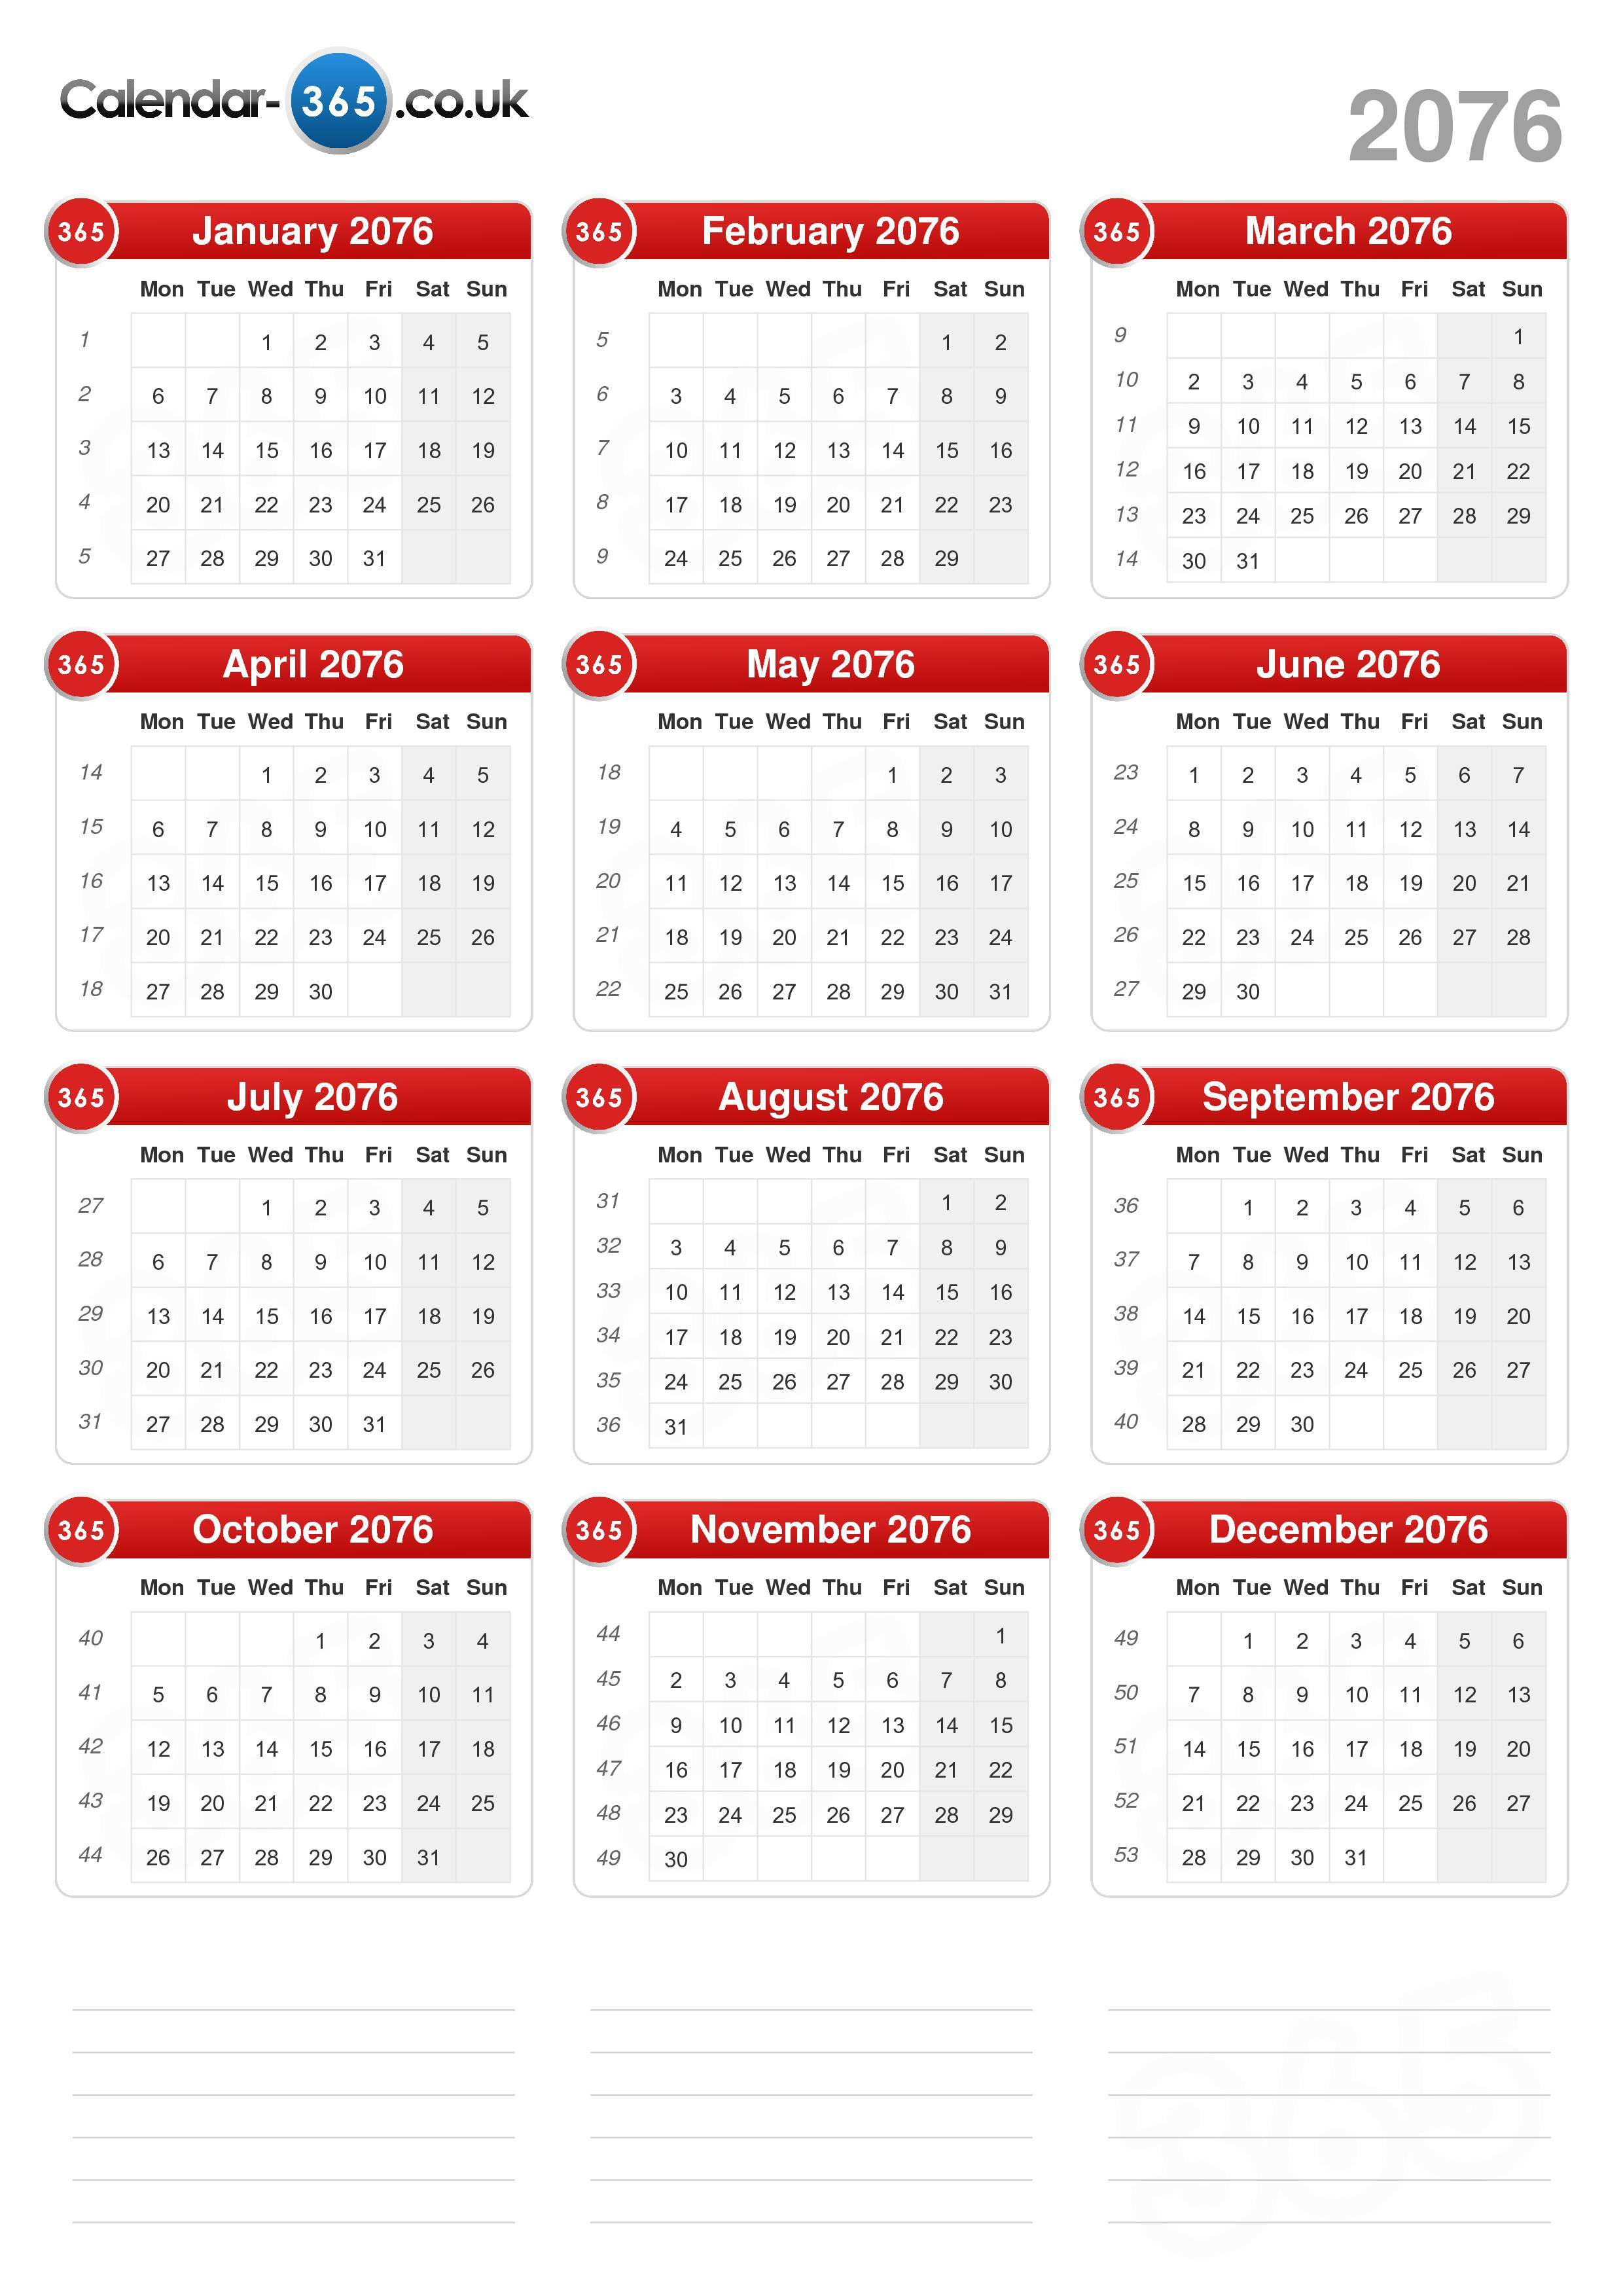 Download the printable calendar 2076 with holidays.